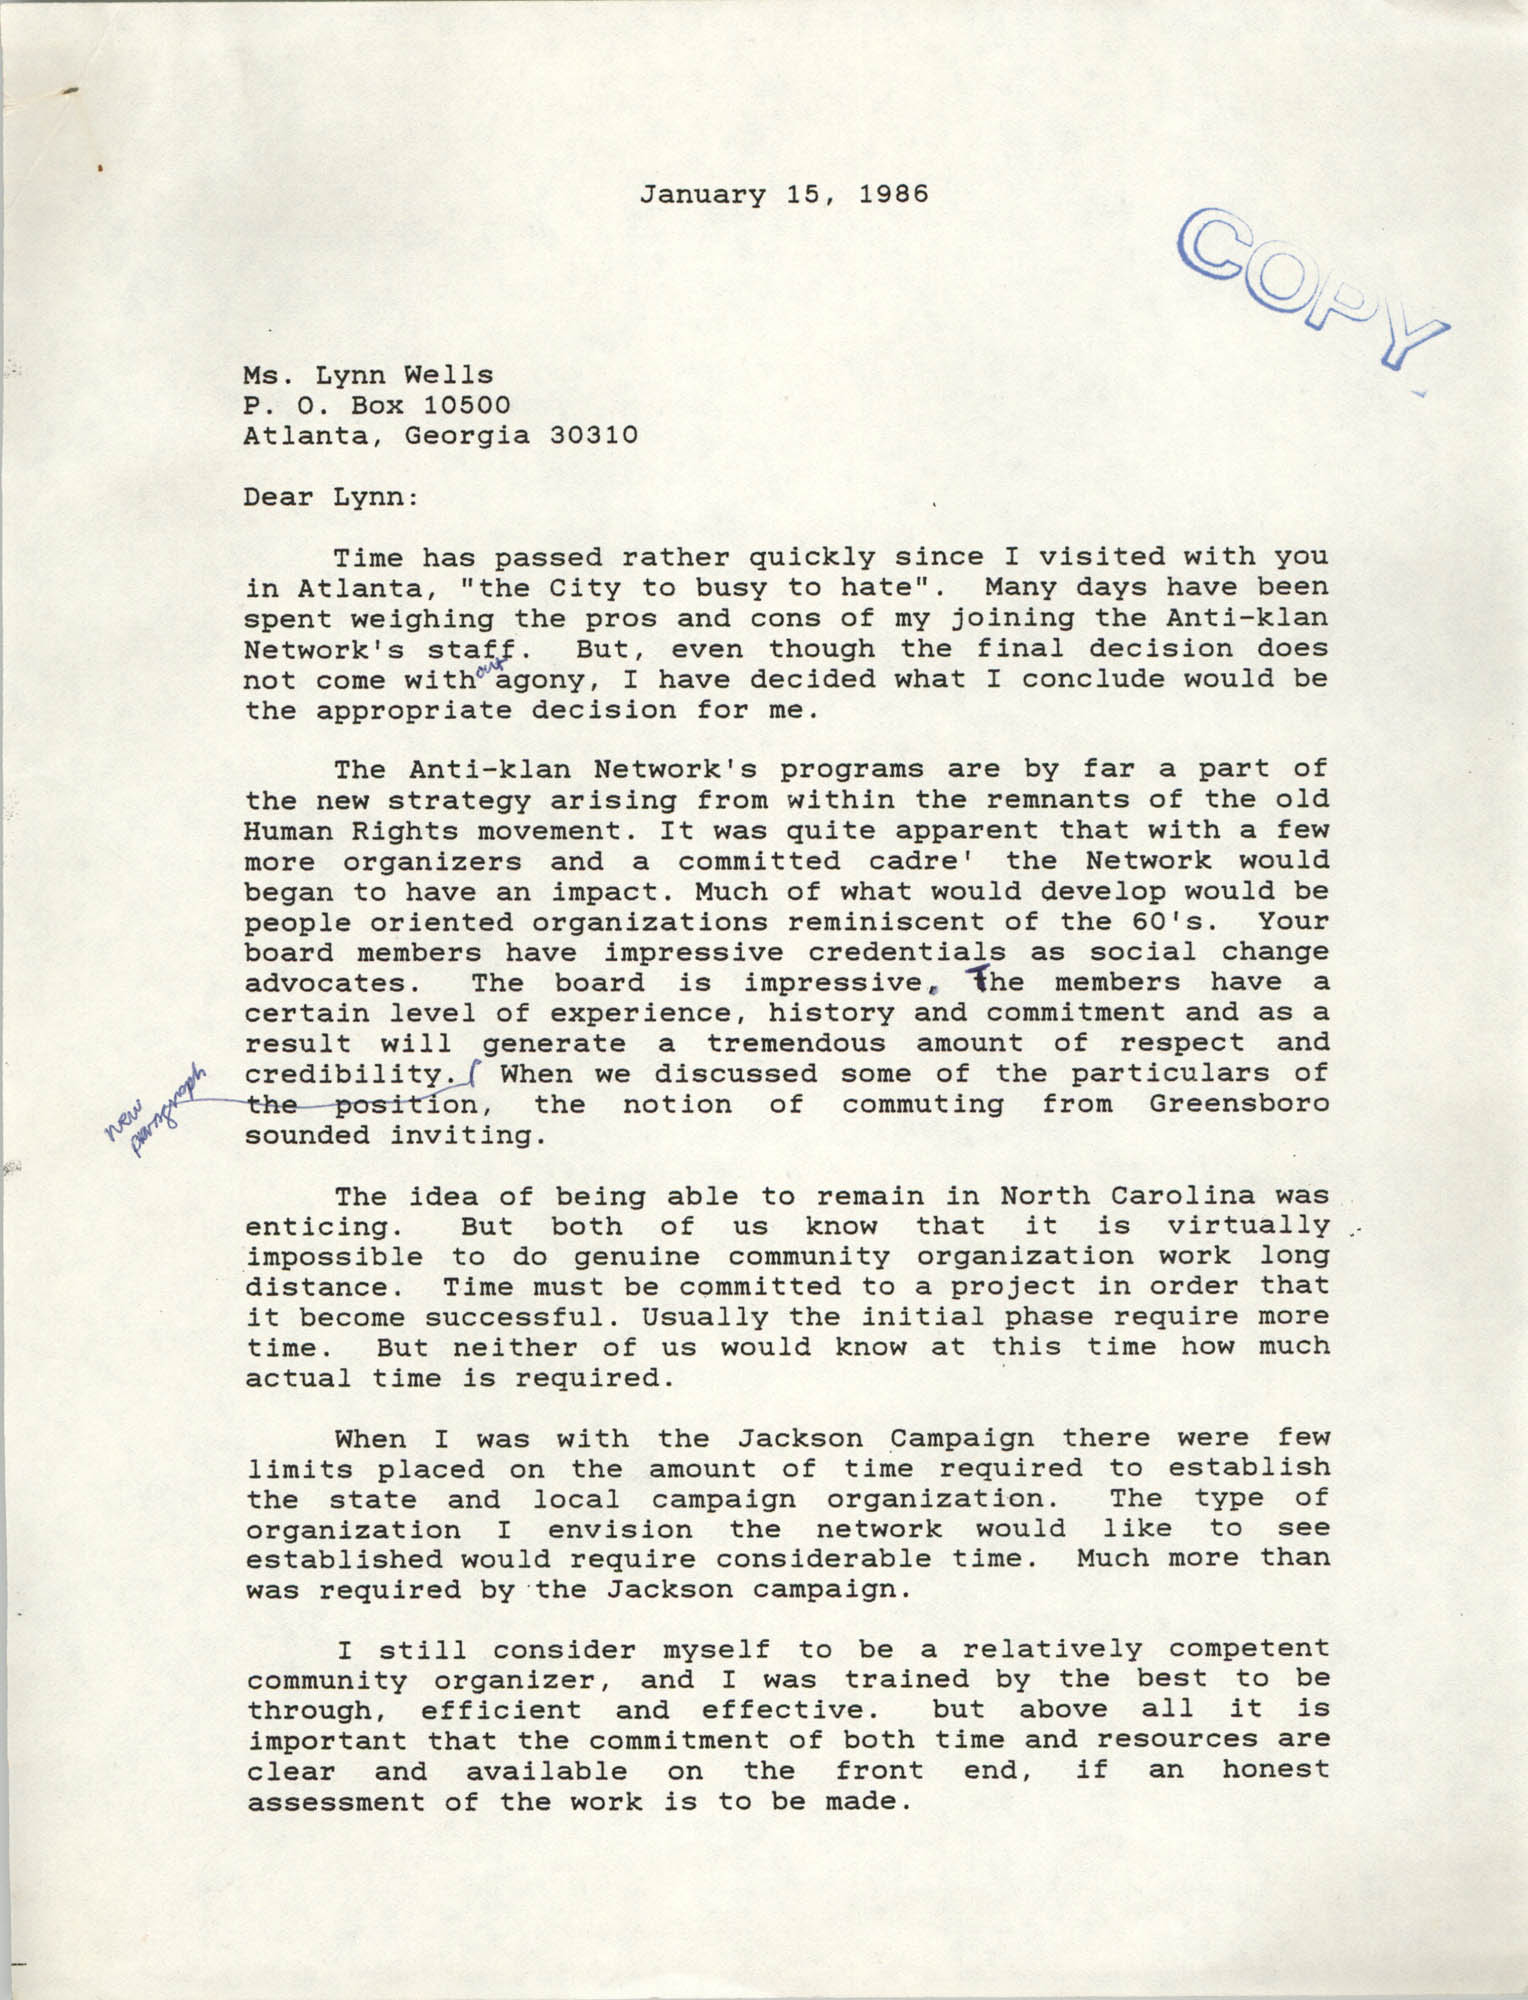 Letter from Cleveland Sellers to Lynn Wells, January 15, 1986